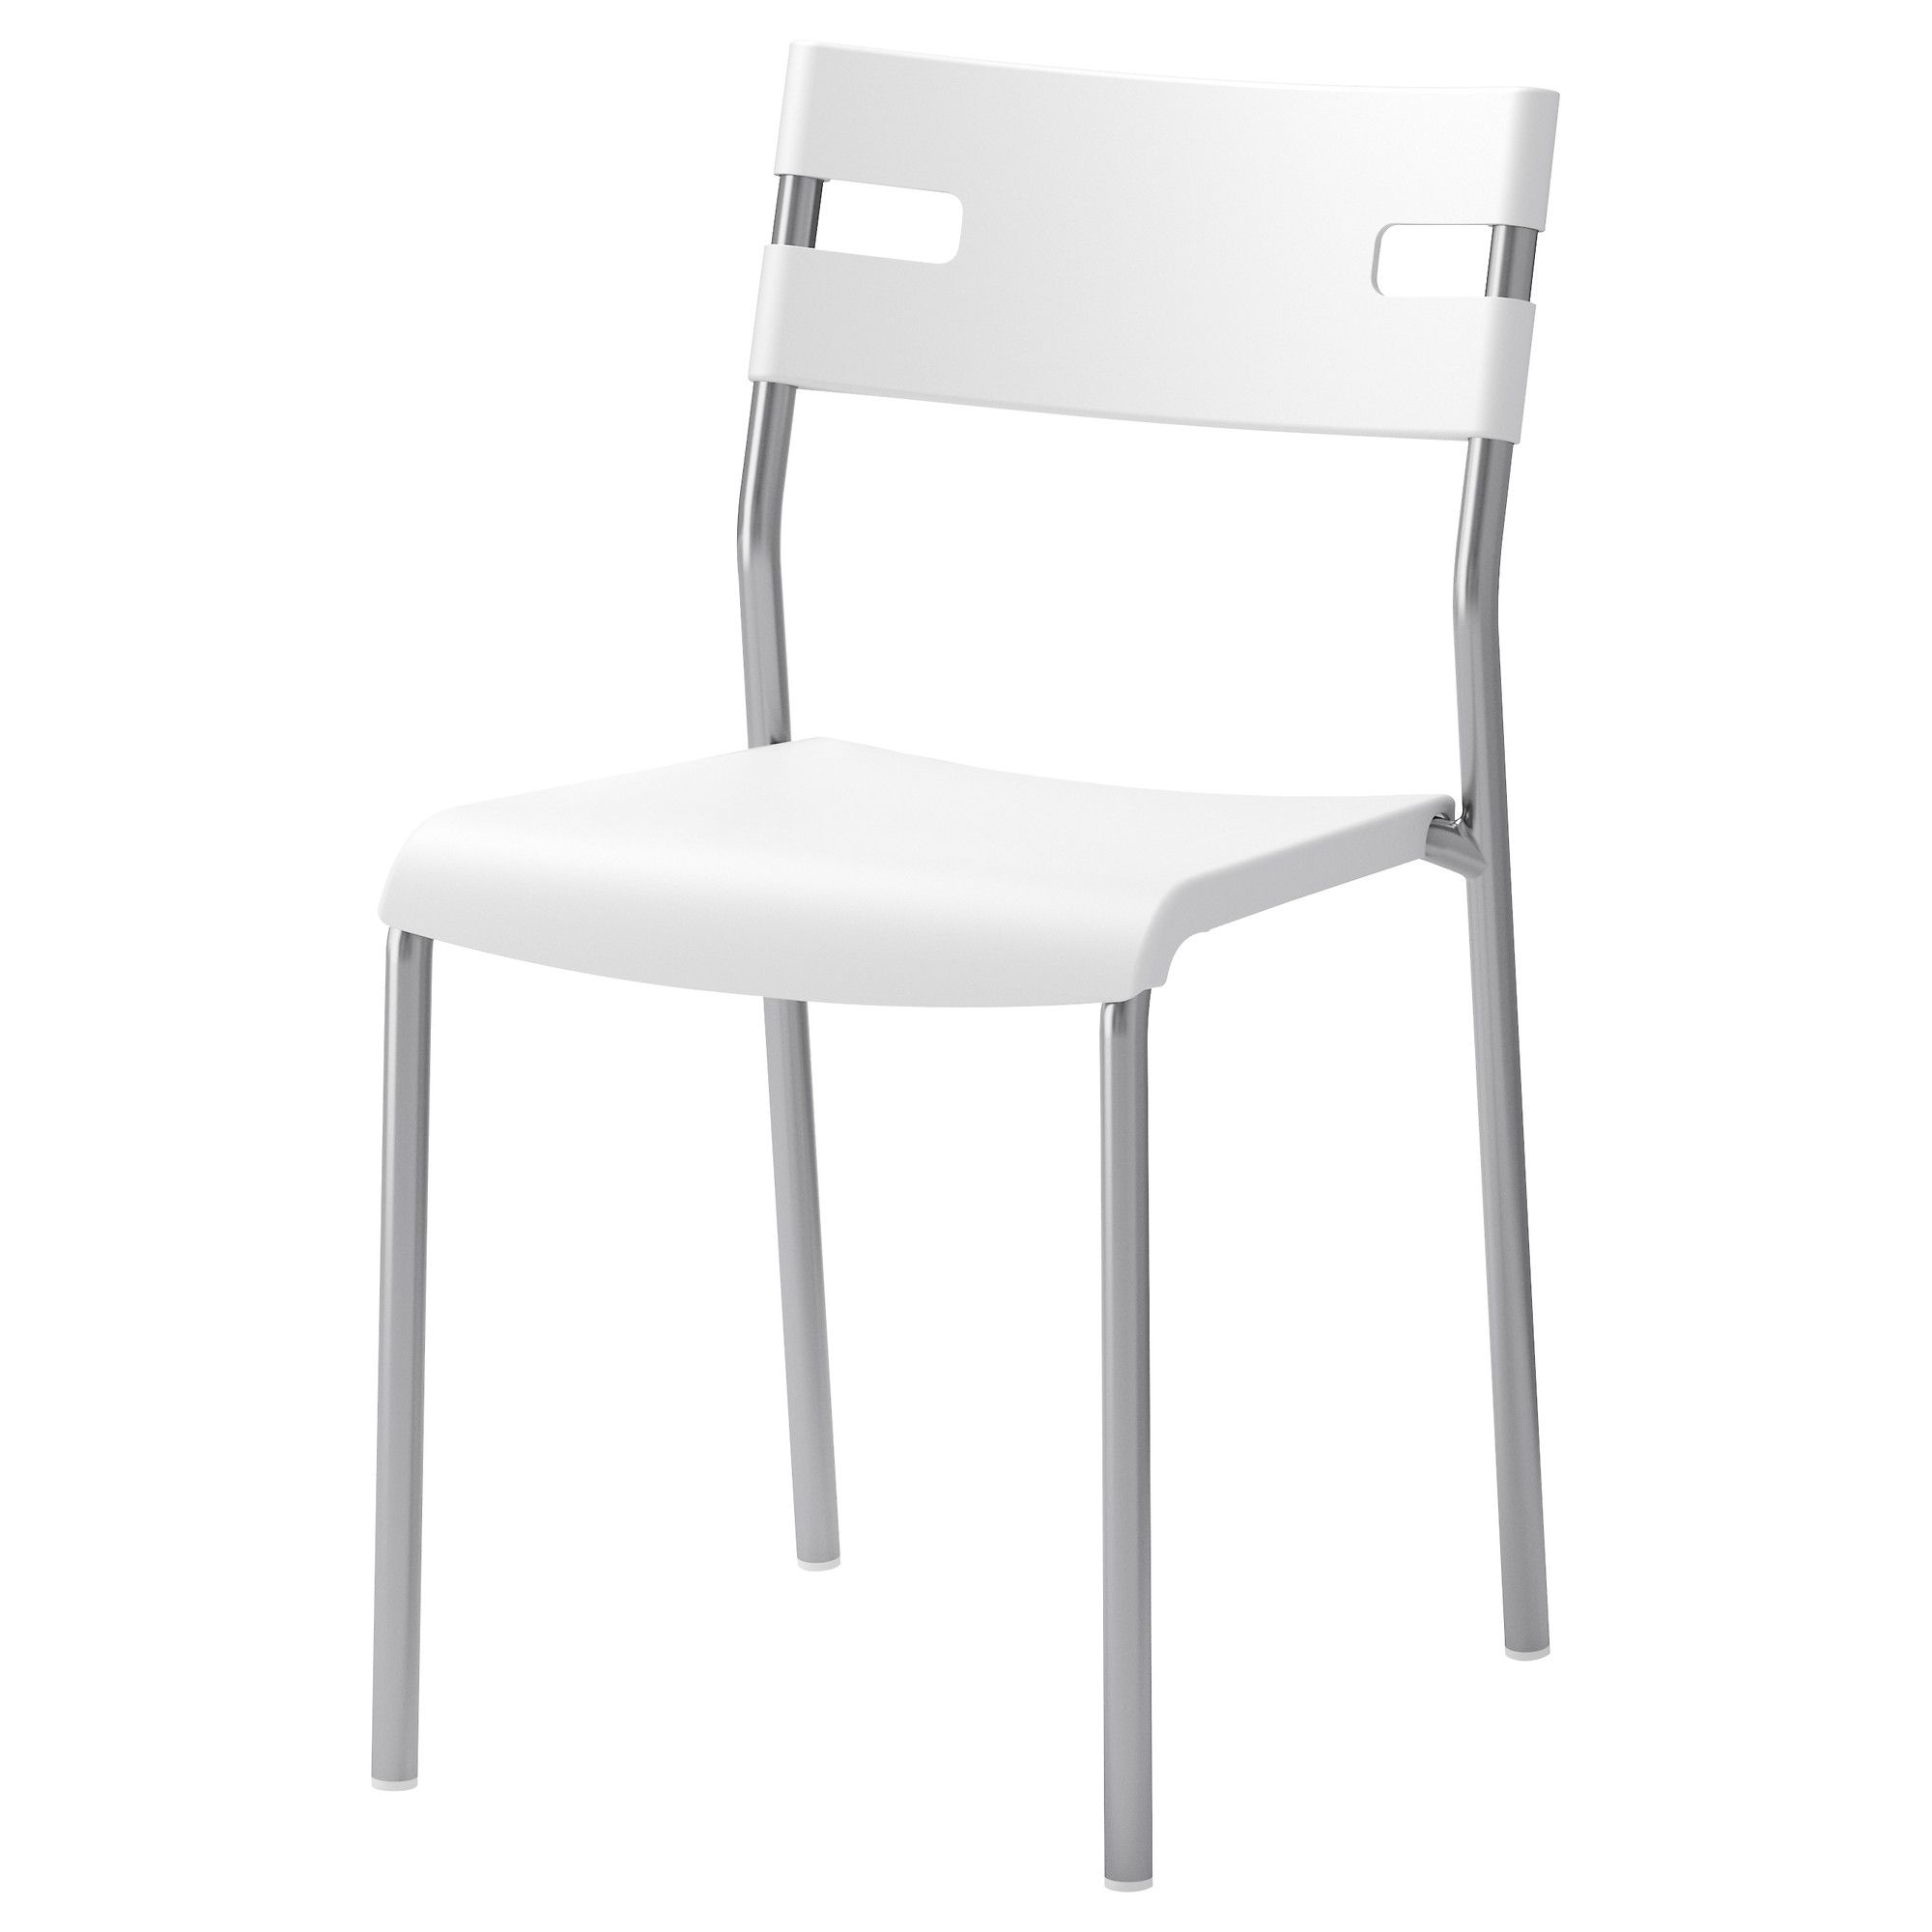 LAVER Chair IKEA 10 Chrome and white supposedly goes with